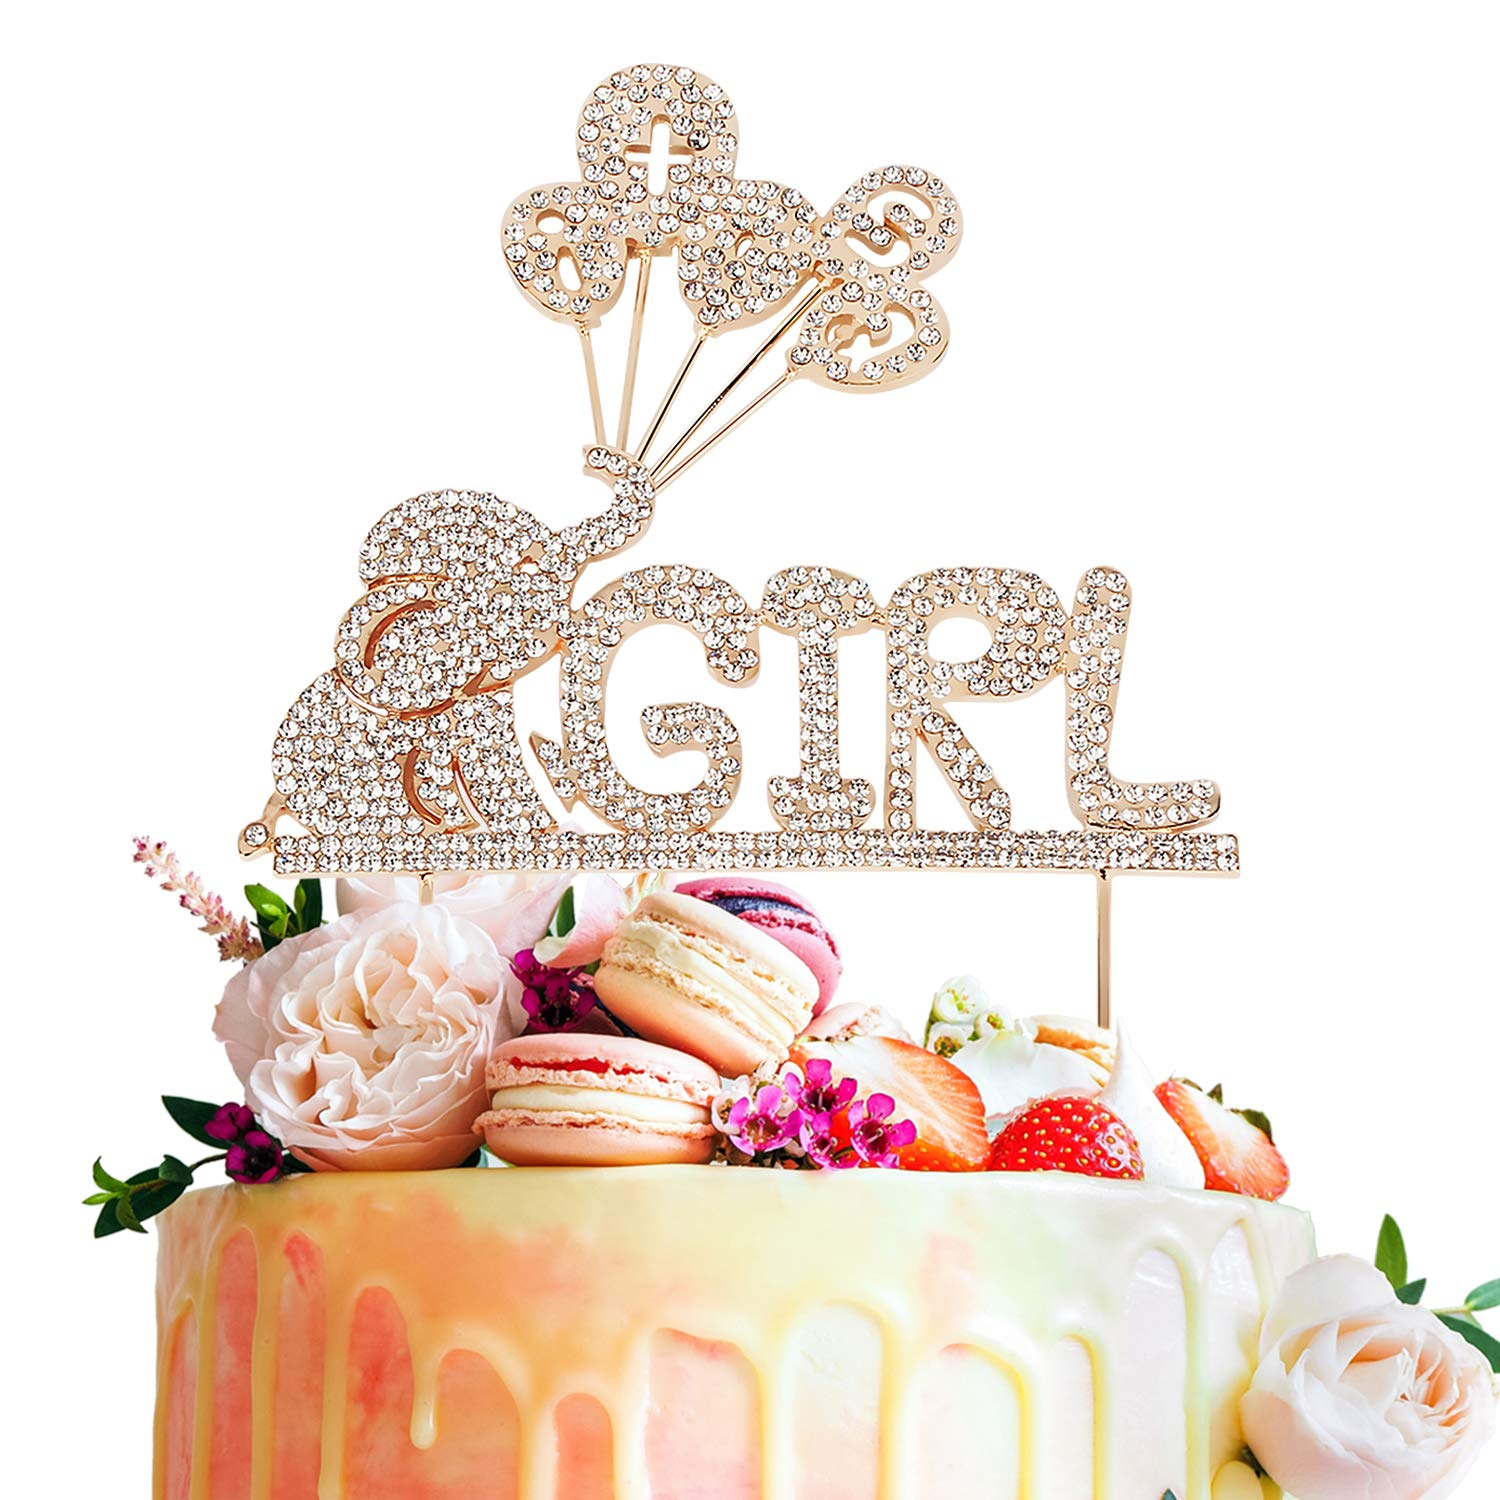 It's a Girl Elephant Baby Rhinestone Gold Metal Cake Topper Cheers to Baby Shower First Birthday Party Decoration - 5.5'' x 9''(Gold).